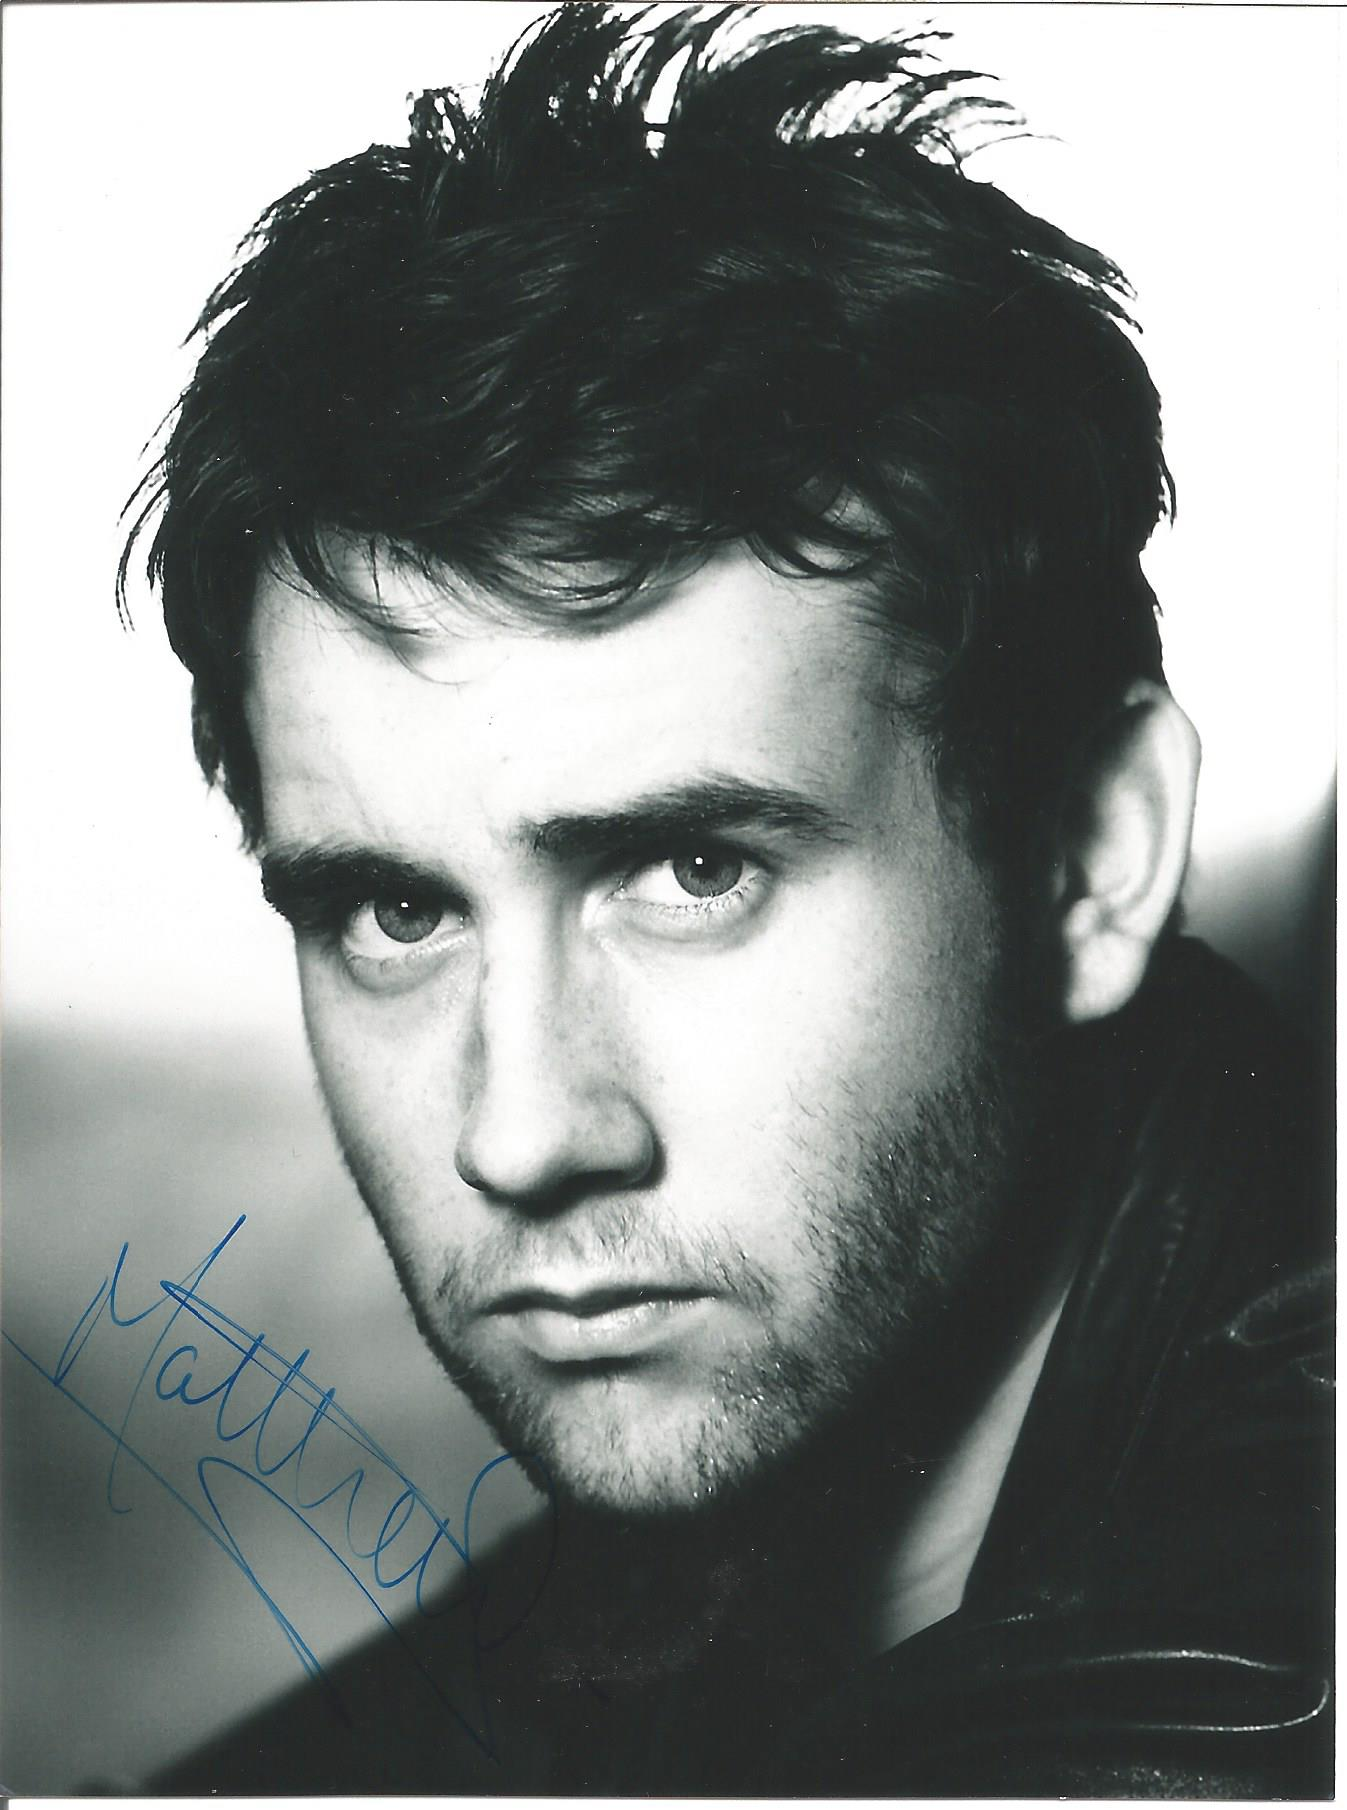 Actor Matthew Lewis signed 6x4½ black and white photo. Matthew David Lewis is an English actor. He